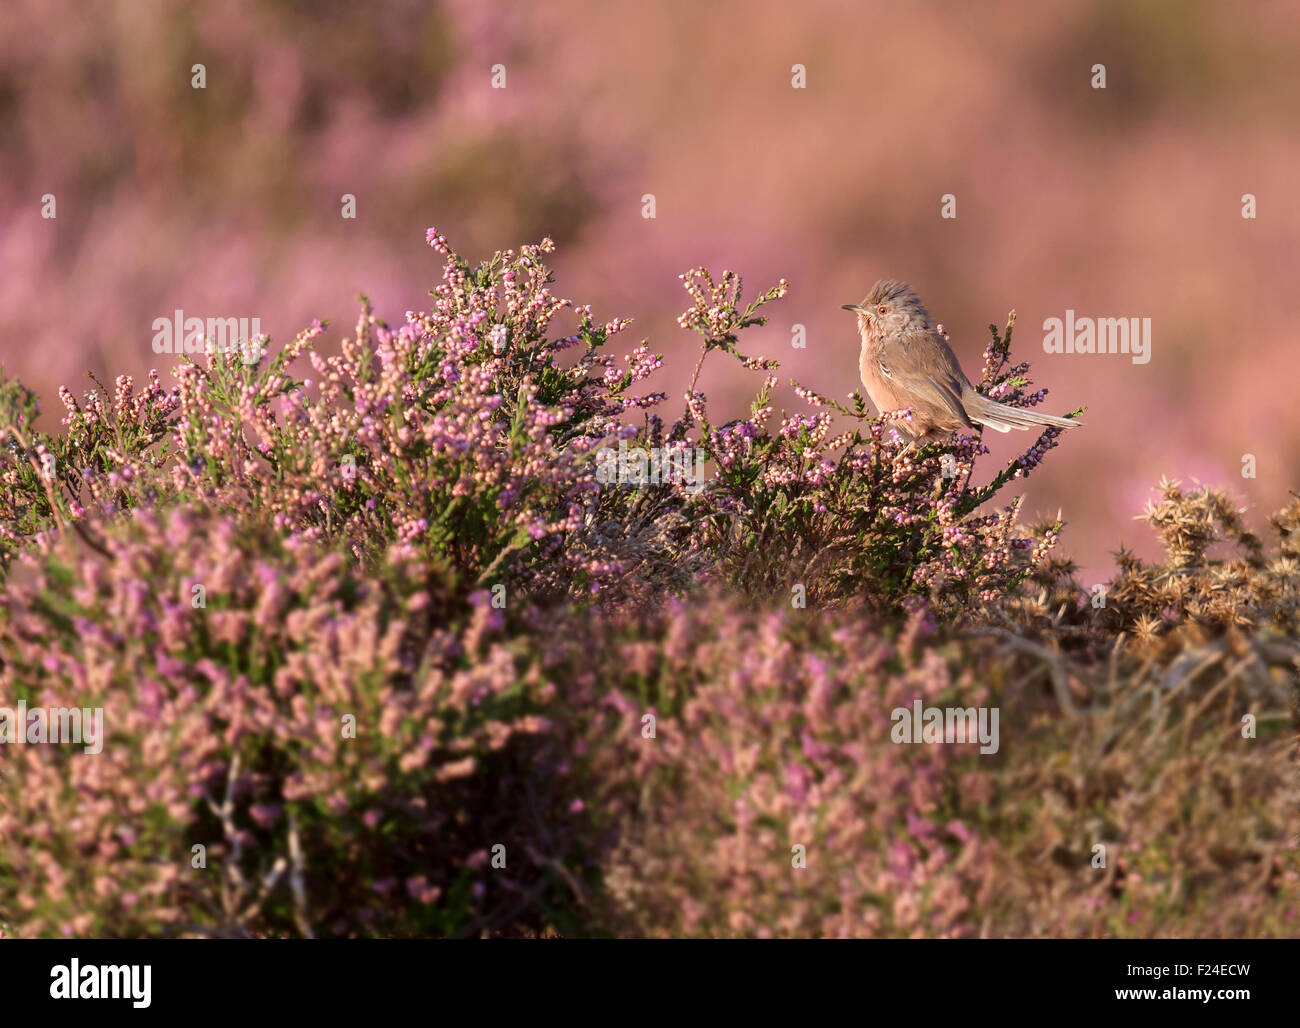 Male Dartford Warbler (Sylvia undata) blending into it's background of flowering late Summer heather perfectly - Stock Image